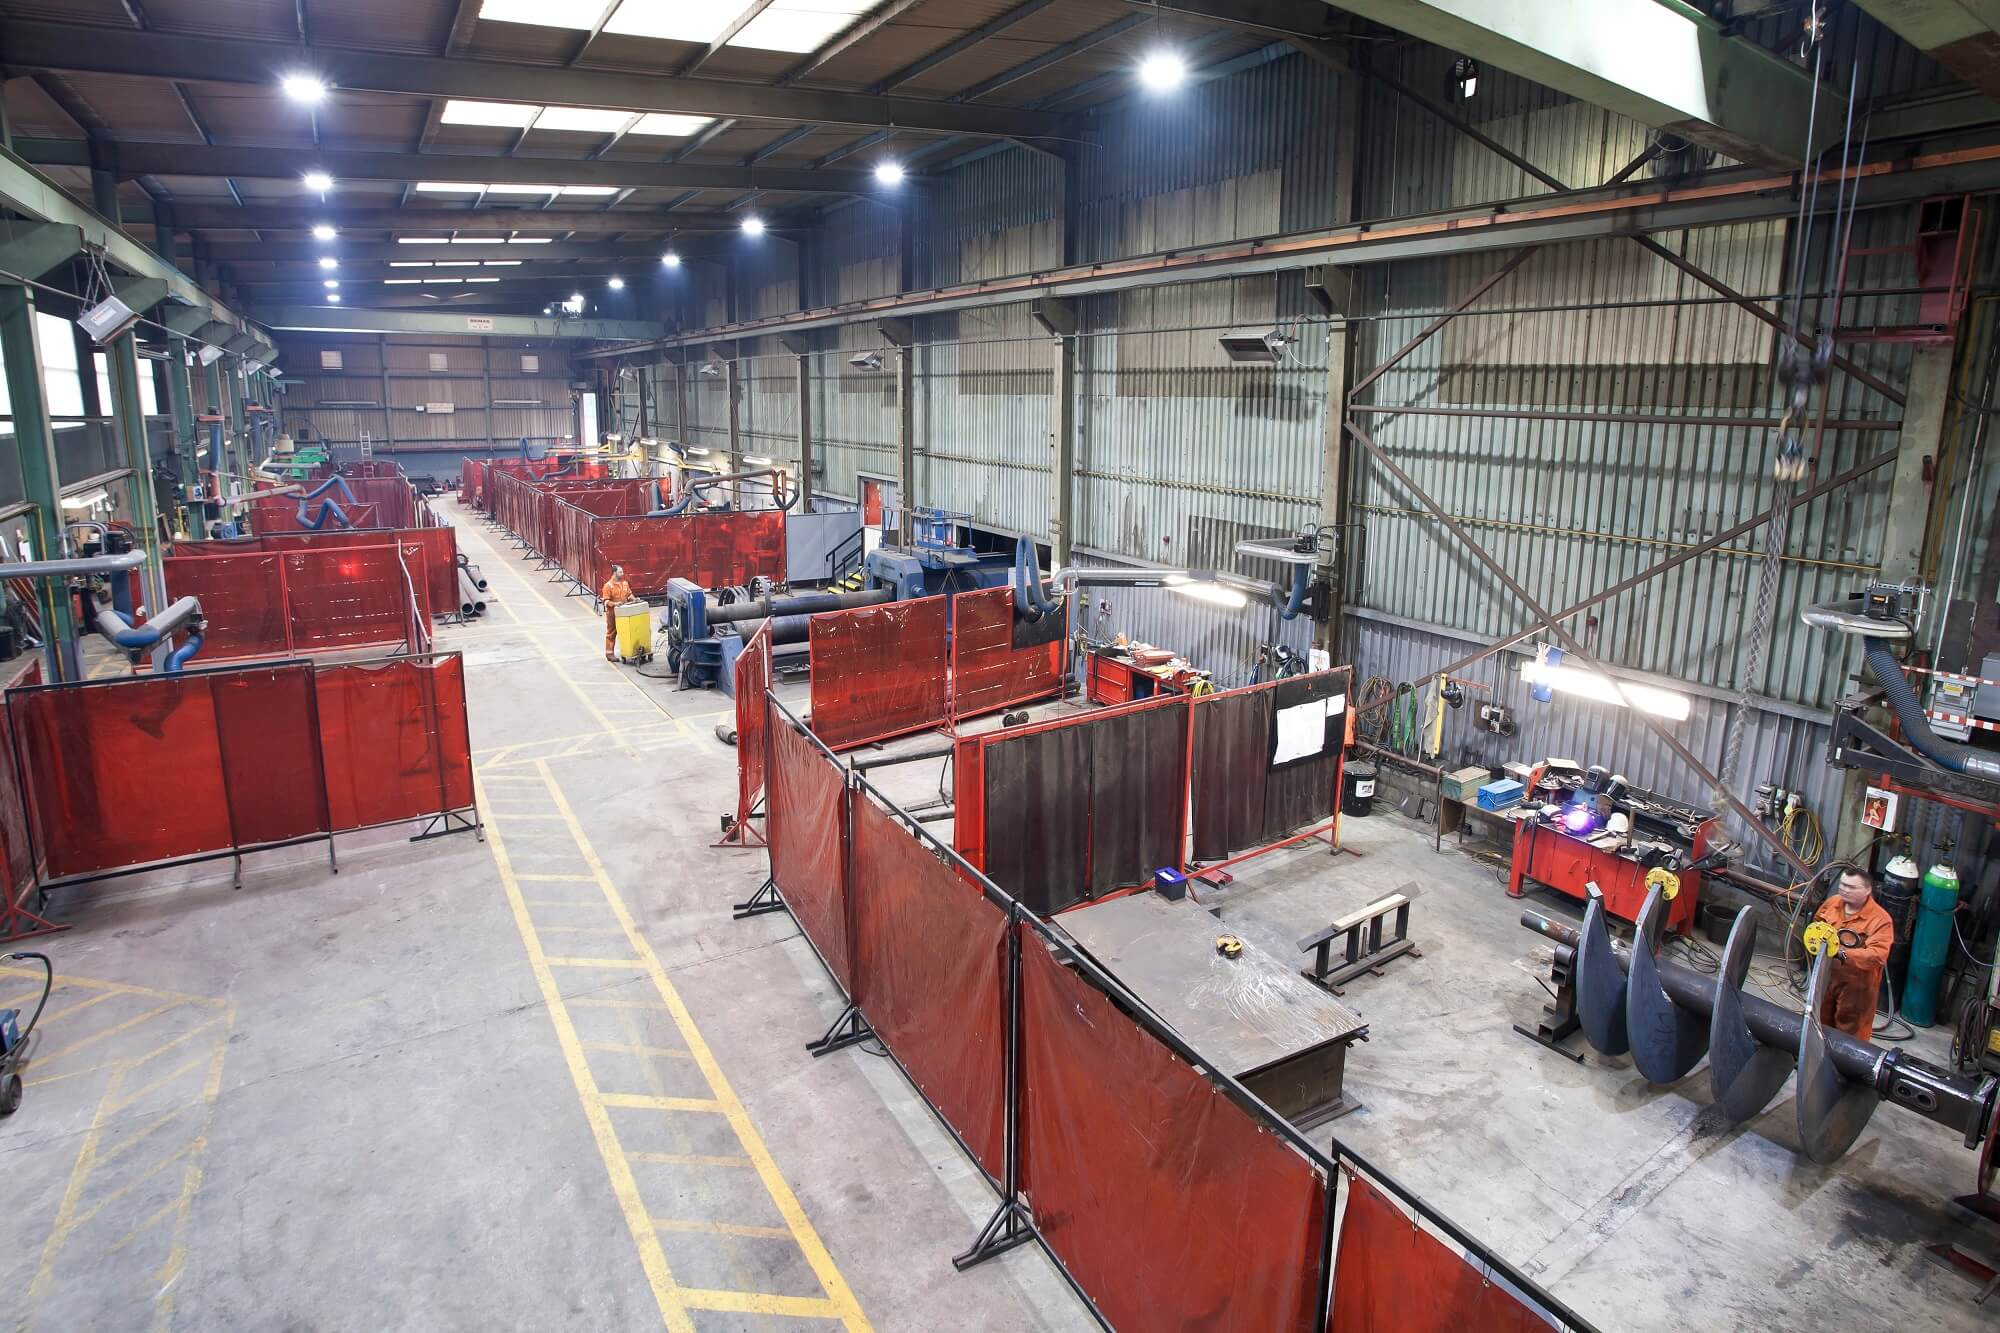 People - Plant Department & Fabrication Yard - Fabrication Department (6)